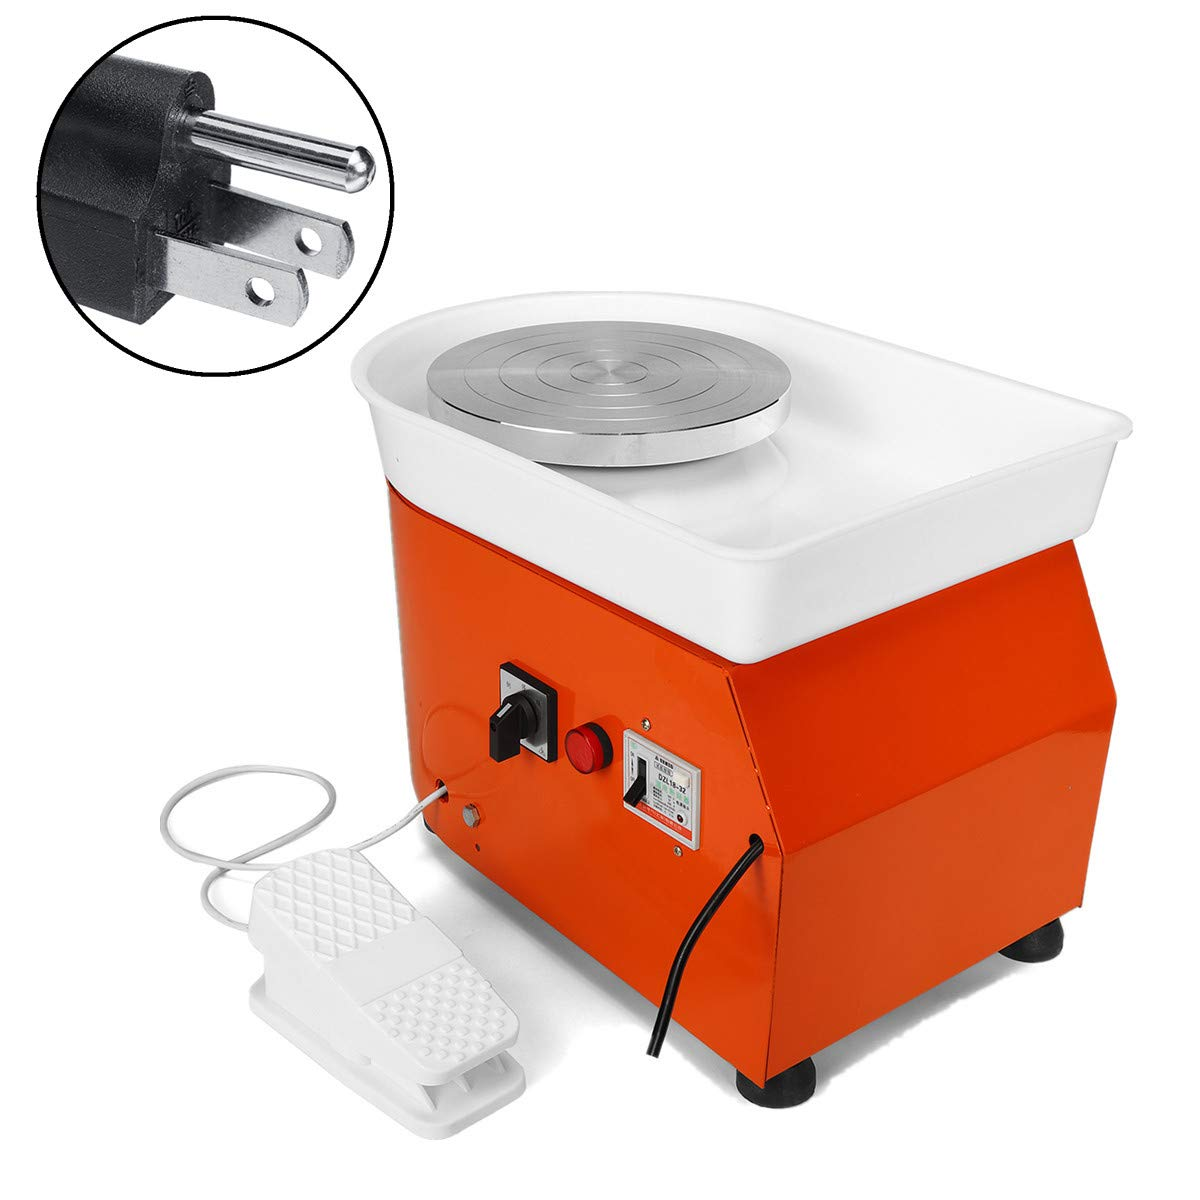 110V 350W Electric Pottery Wheel Machine with Foot Pedal Ceramic Work Clay Craft Electric Pottery Wheel DIY Clay Tool for Adults by RETERMIT (Image #6)